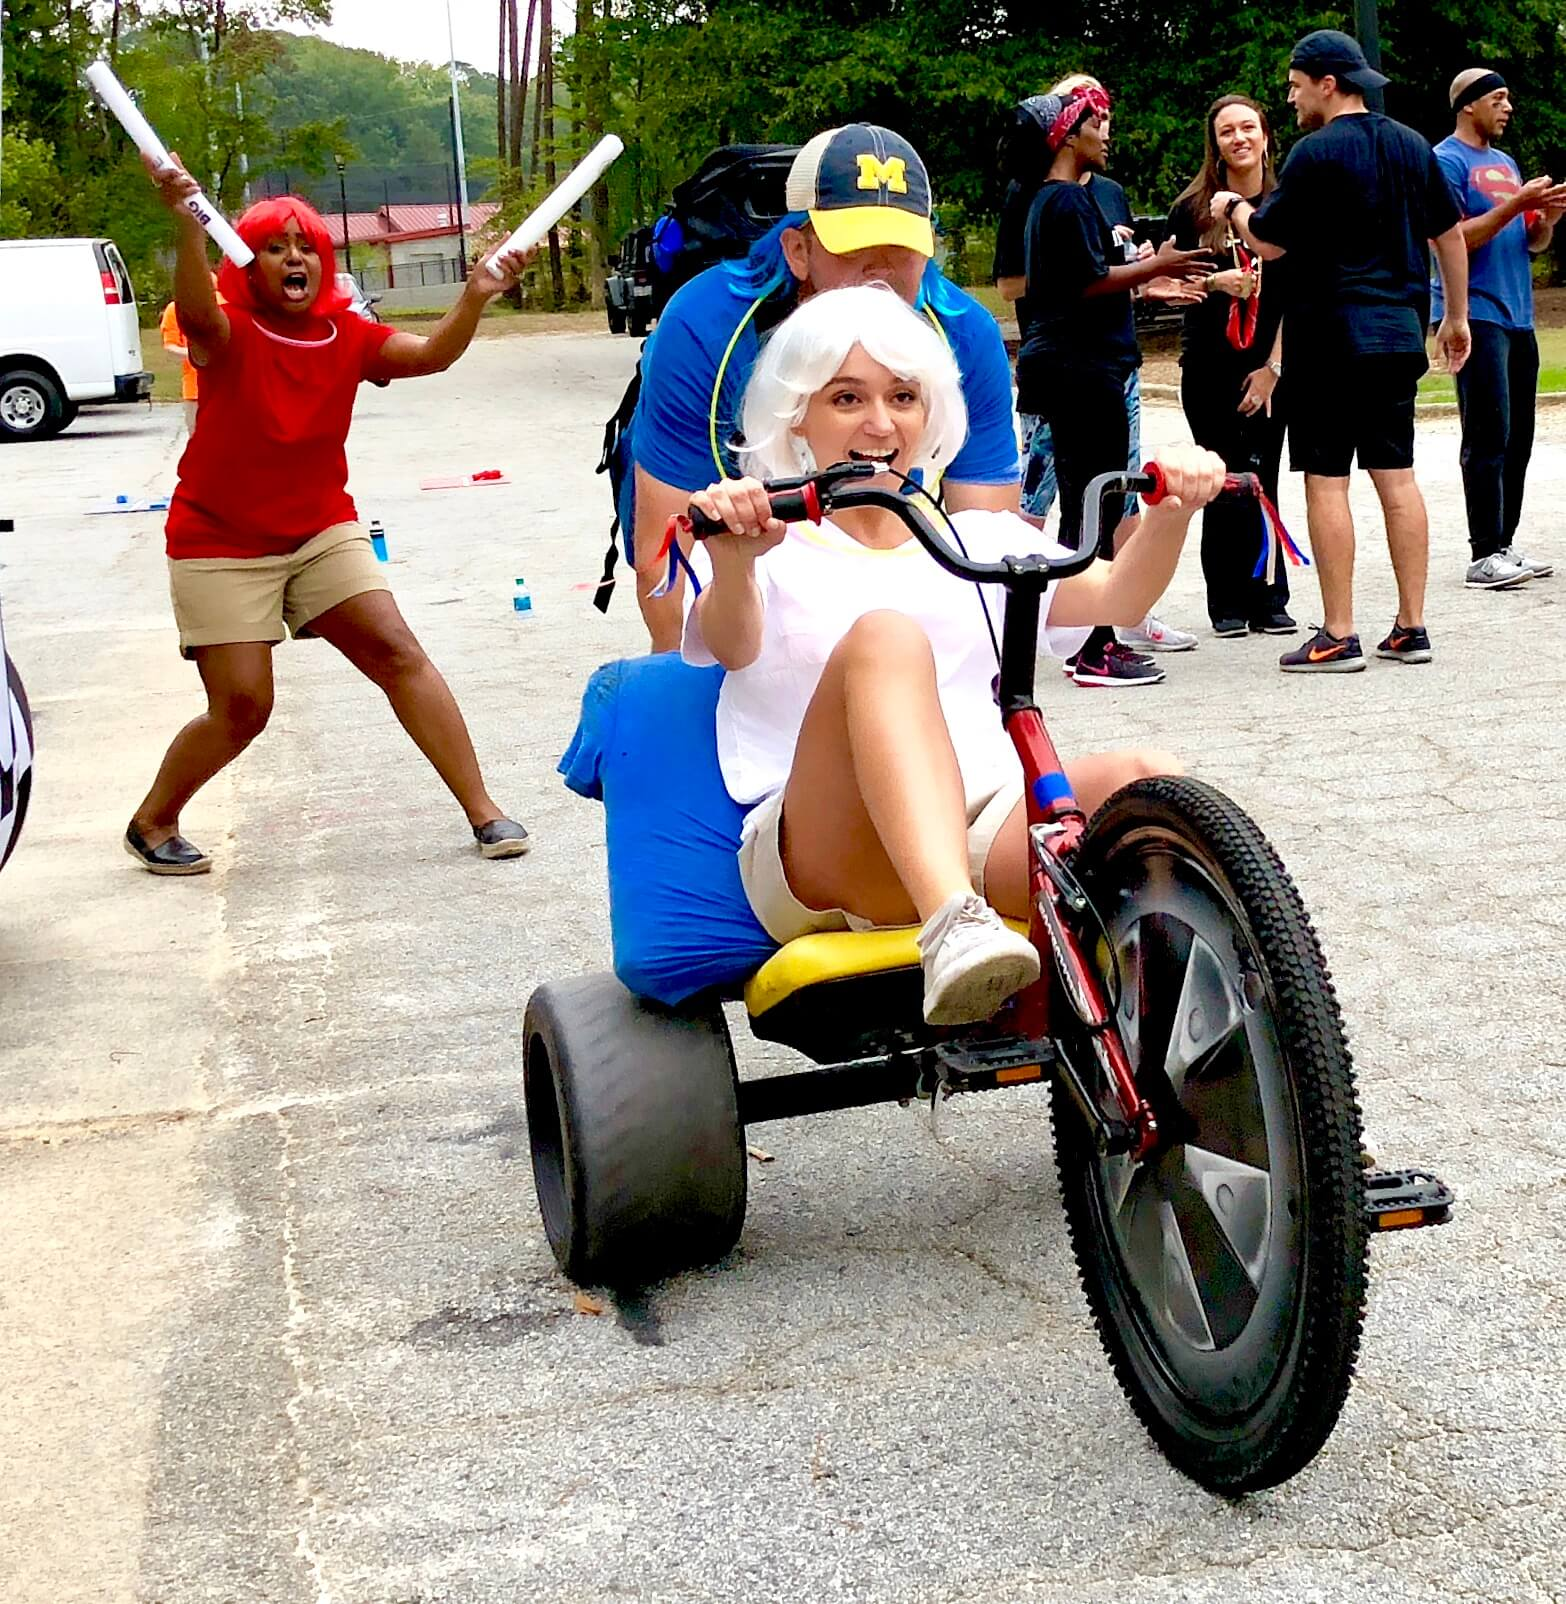 Excitement and team spirt is easy to see at this Adult Big Wheel Club team building event in Atlanta